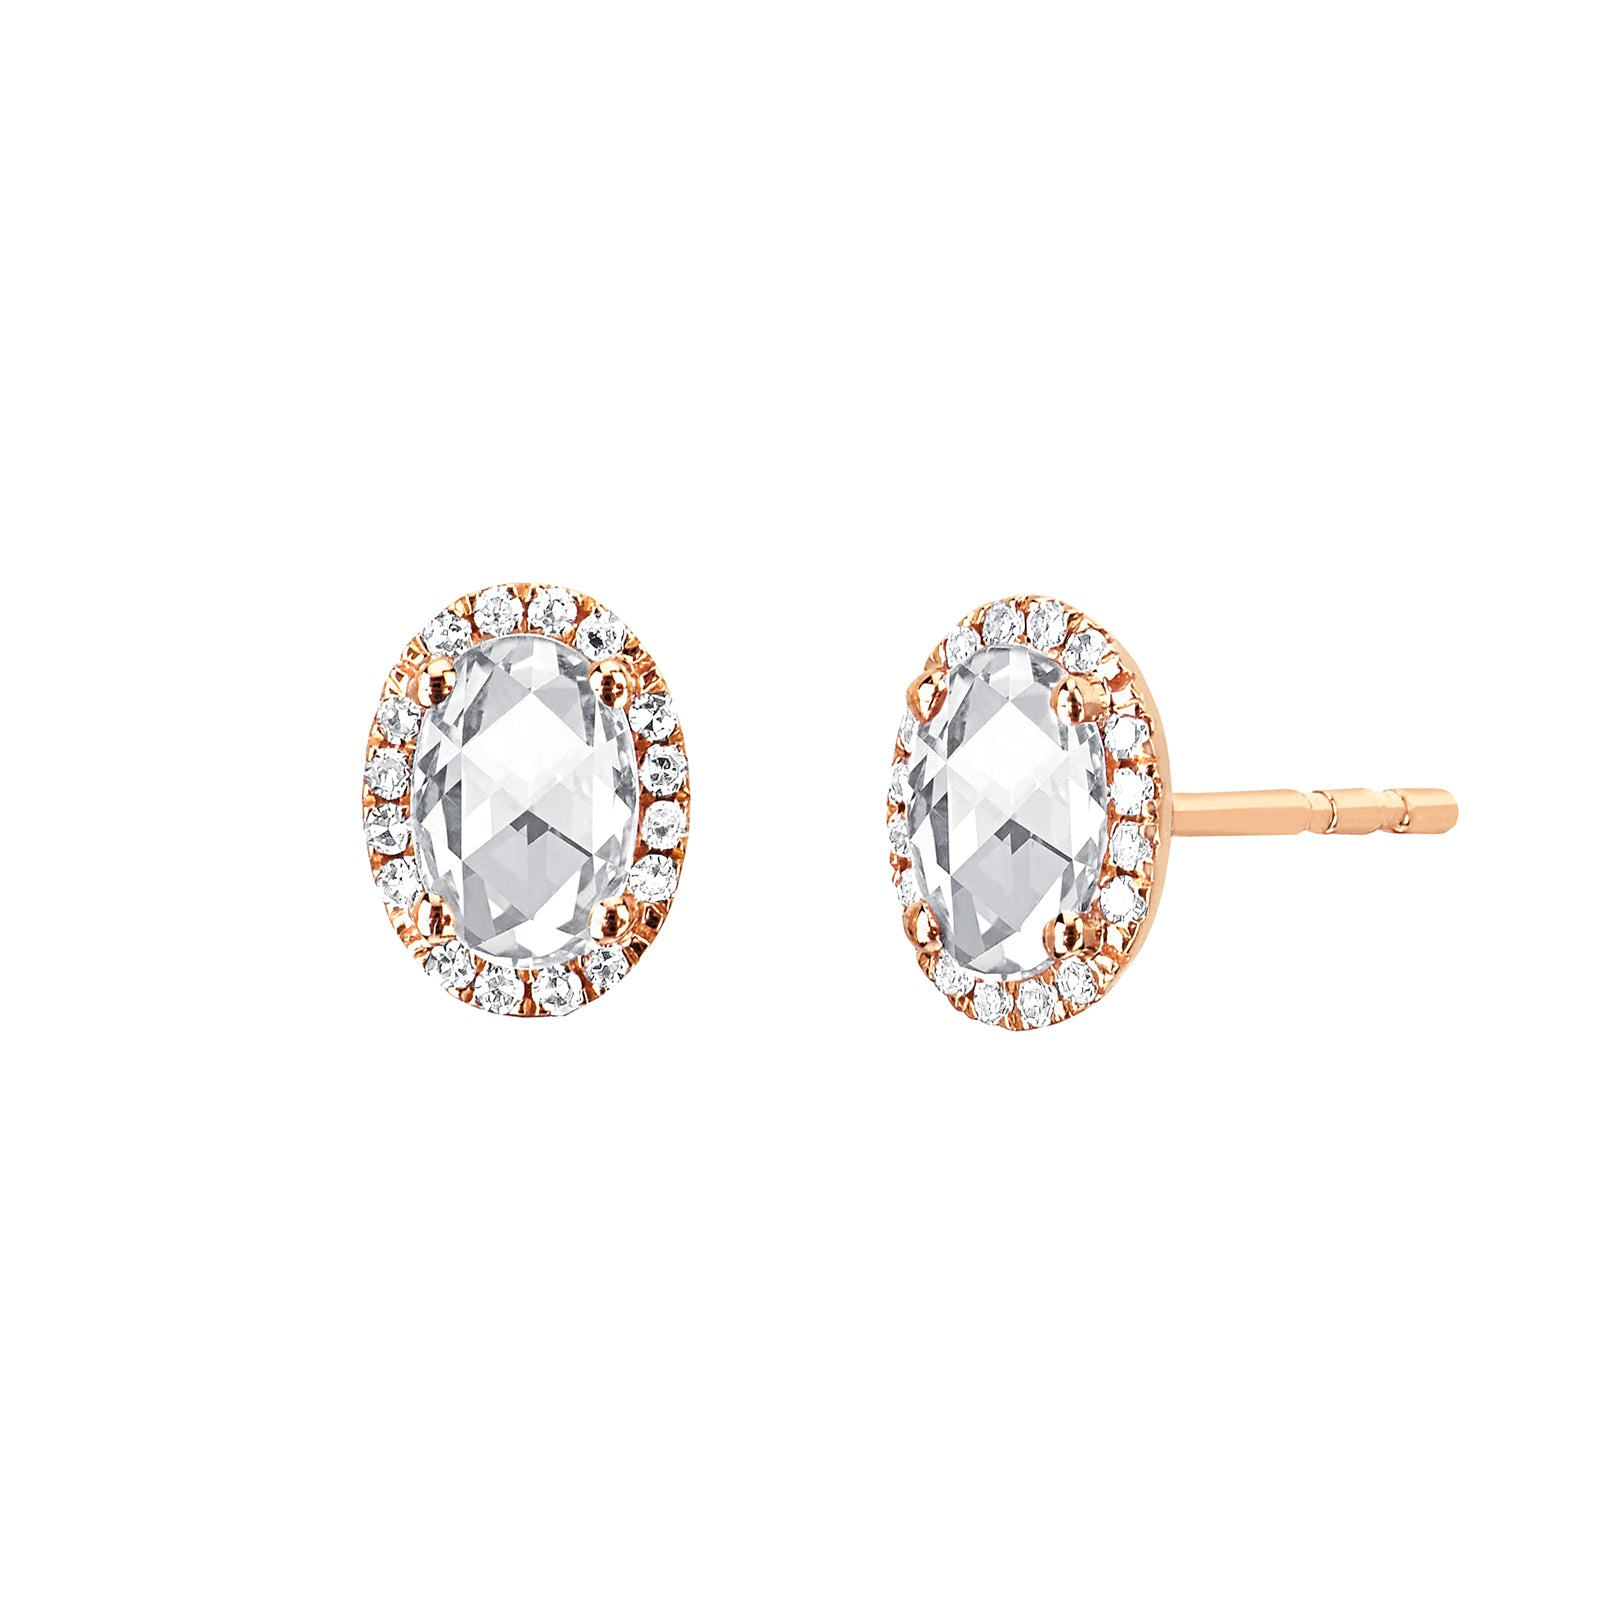 EF Collection Diamond & White Topaz Oval Studs - Yellow Gold - Earrings - Broken English Jewelry